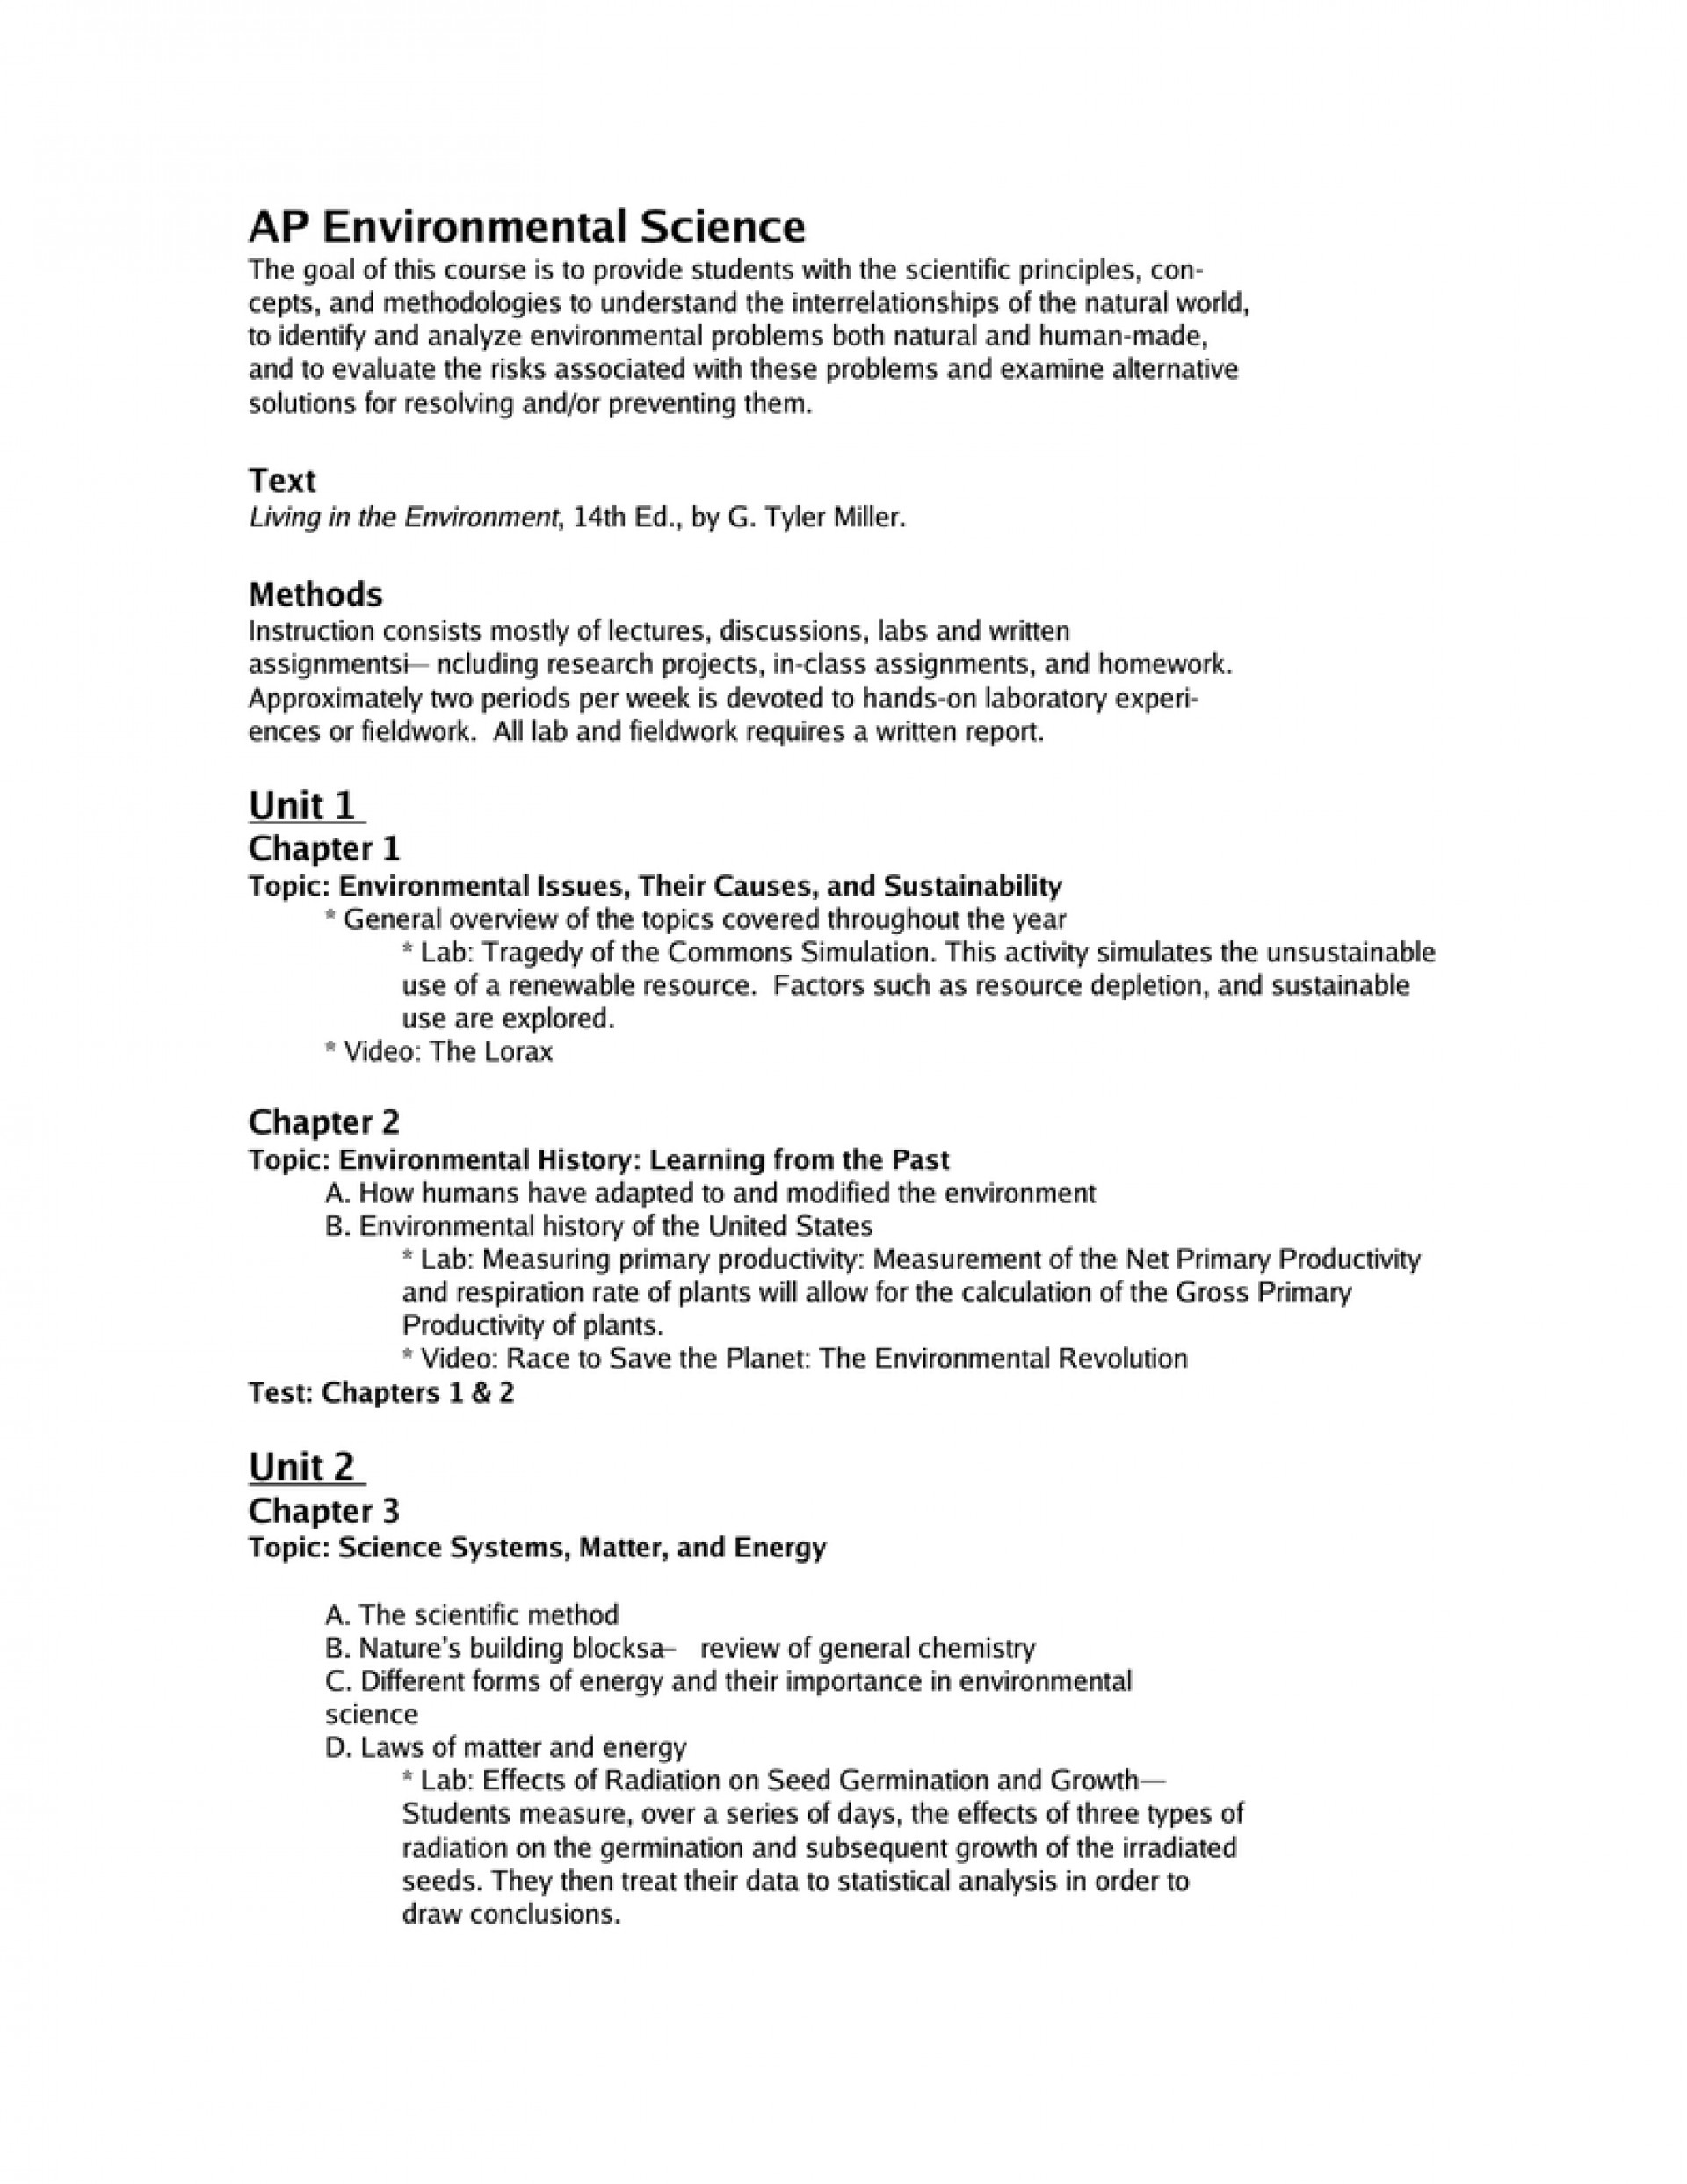 021 Ap Environmental Science Research Paper Topics 002102029 1 Fearsome 1920